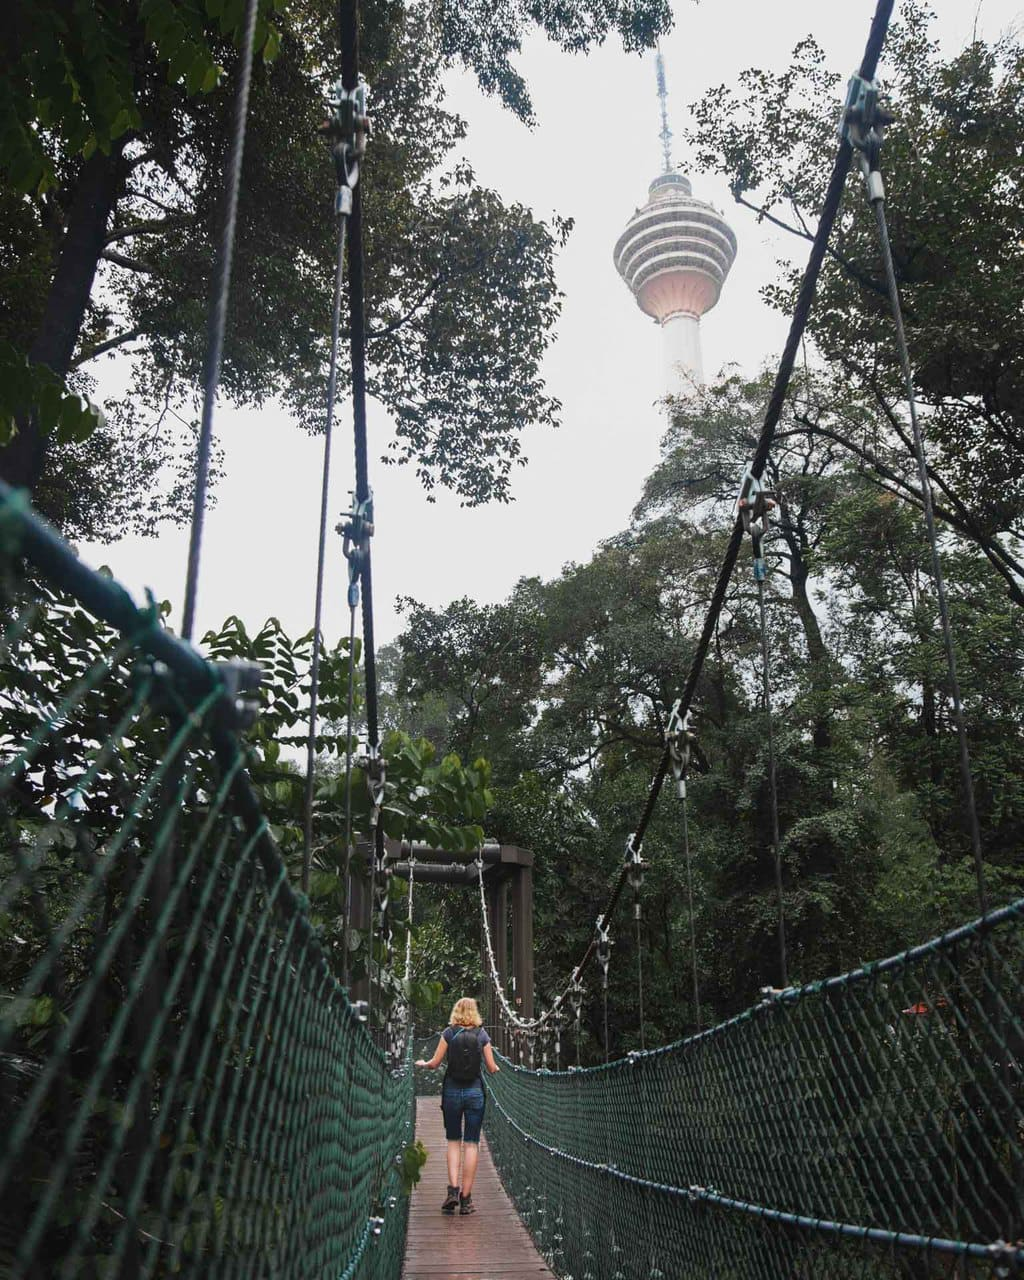 KL Eco Forest Park, Kuala Lumpur, KL Tower